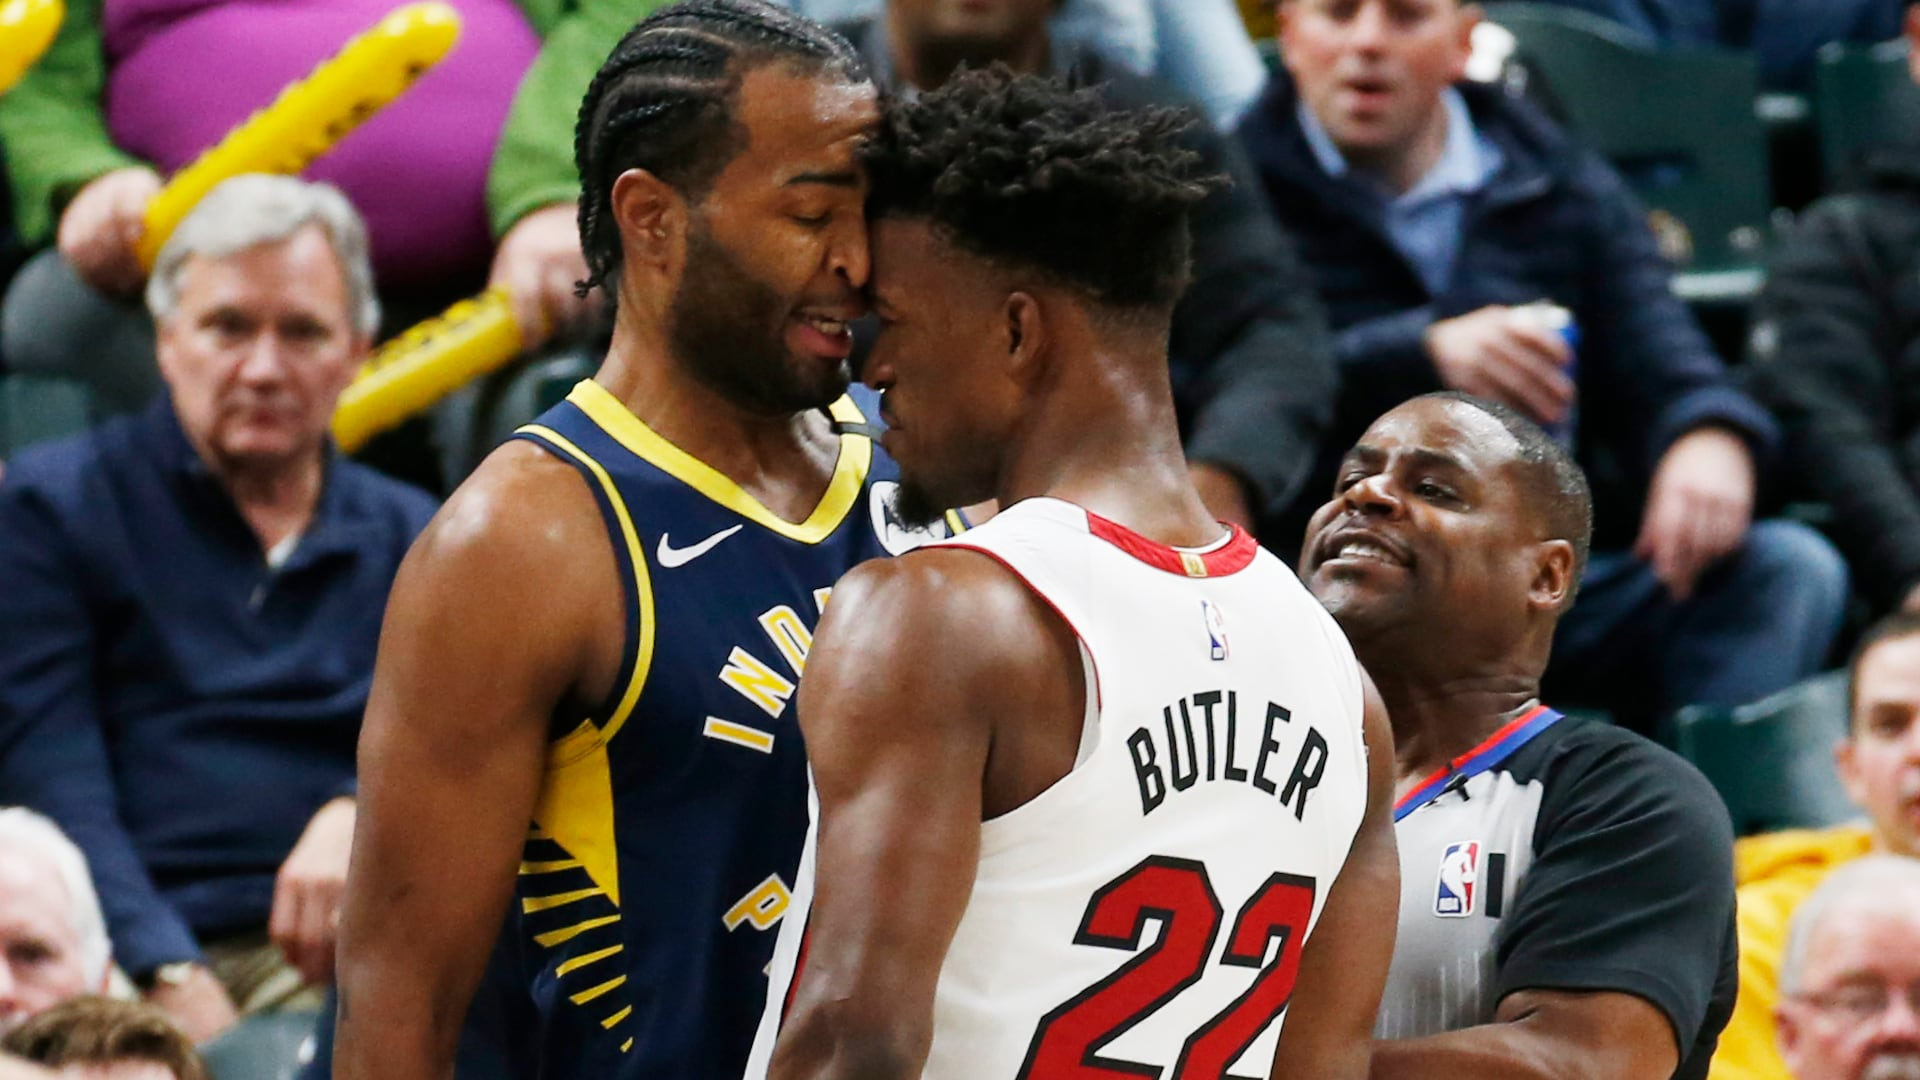 NBA fines T.J. Warren, Jimmy Butler for roles in altercation